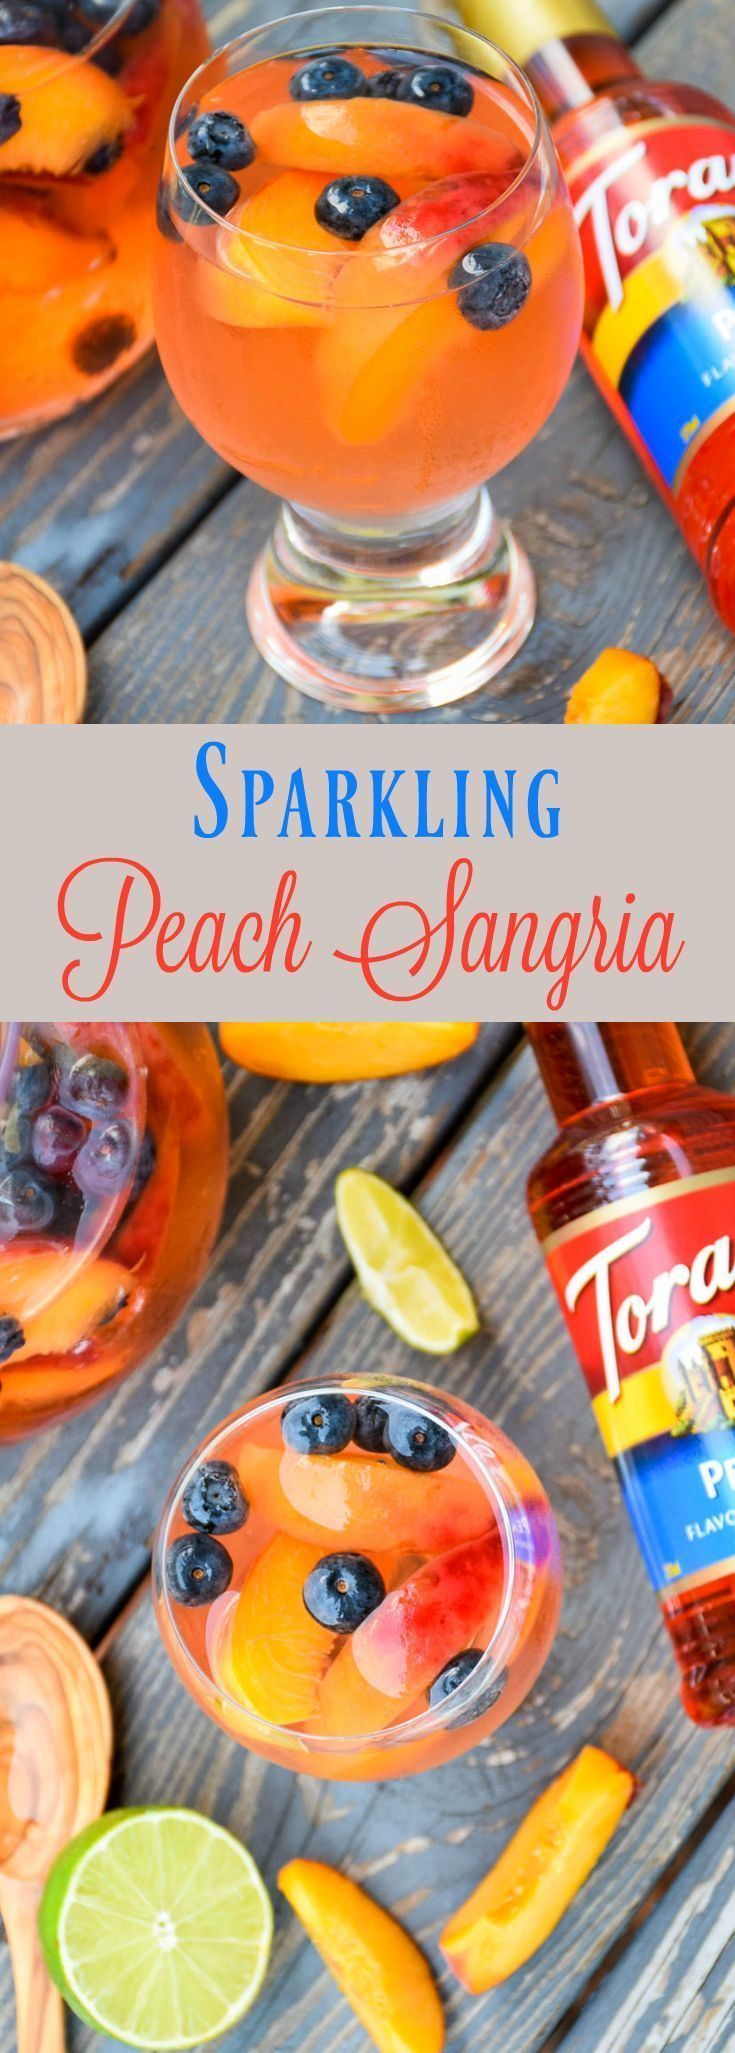 Make a splash this summer with Sparkling Peach Sangria! Full of peach flavor, this beverage is refreshing, delicious and perfect for summertime fun! @walmart #MyToraniSummer  @ToraniFlavor #ad